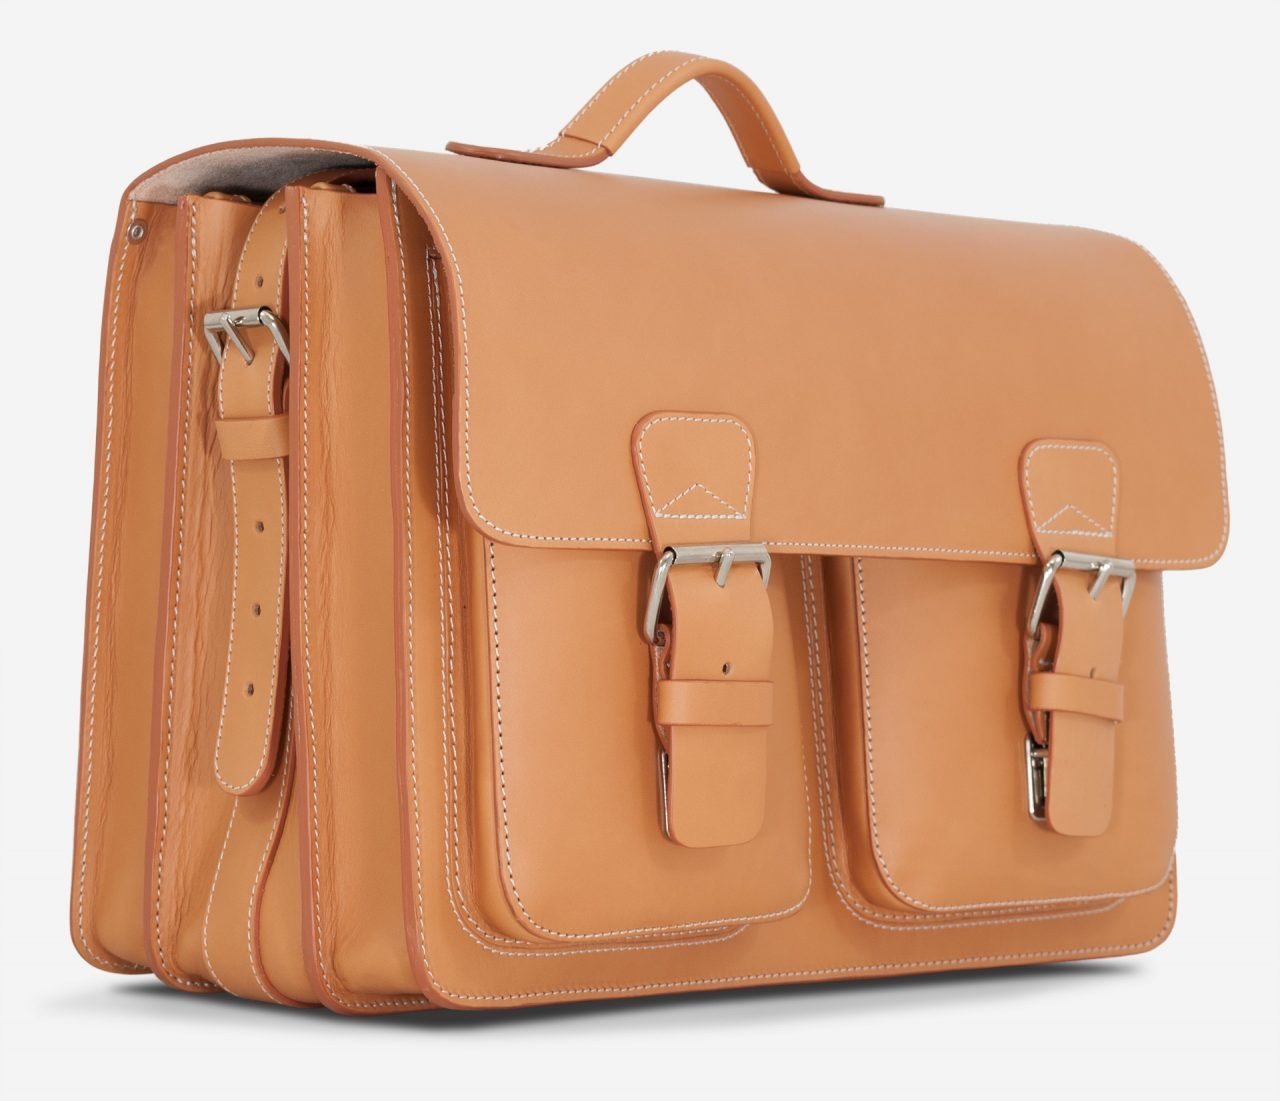 Side view of large Ruitertassen tan leather satchel with 3 gussets and 2 symmetric front pockets.